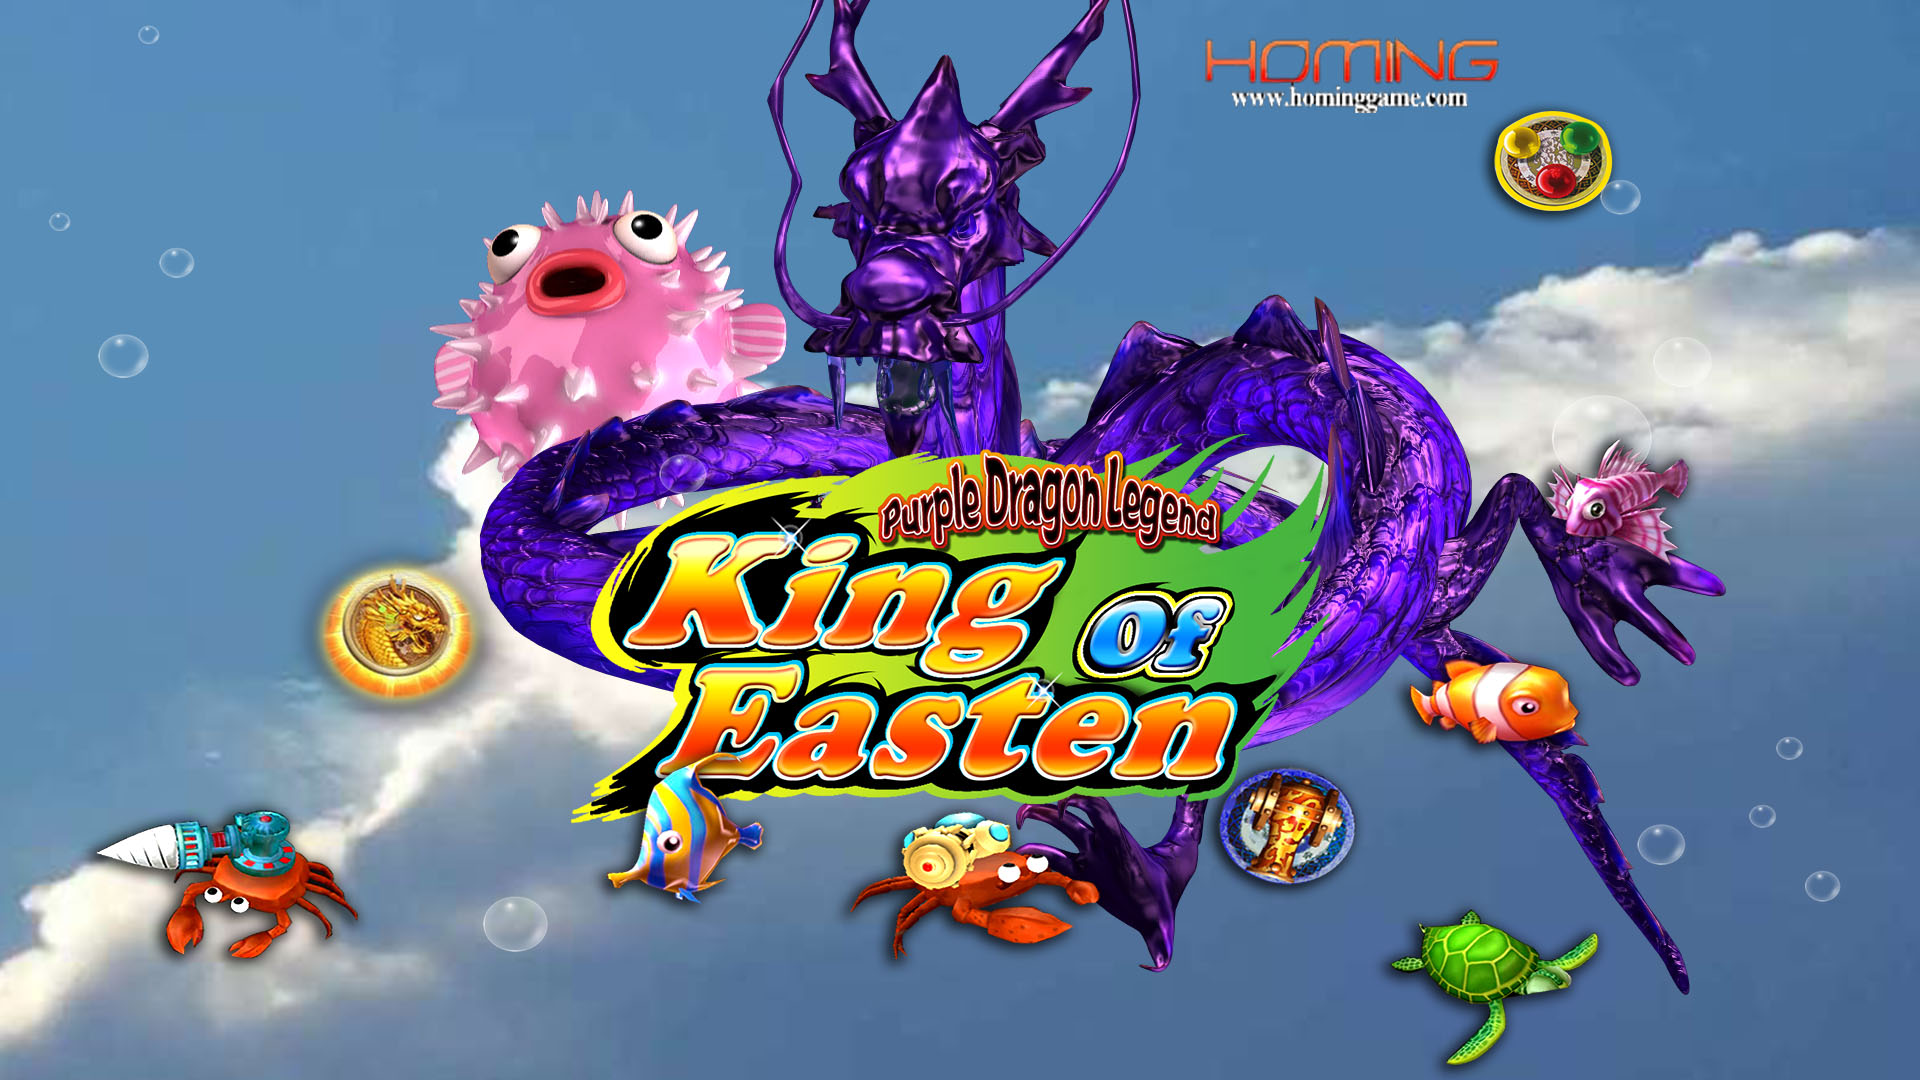 Purple Dragon Fishing Game Purple Dragon Legend Fishing